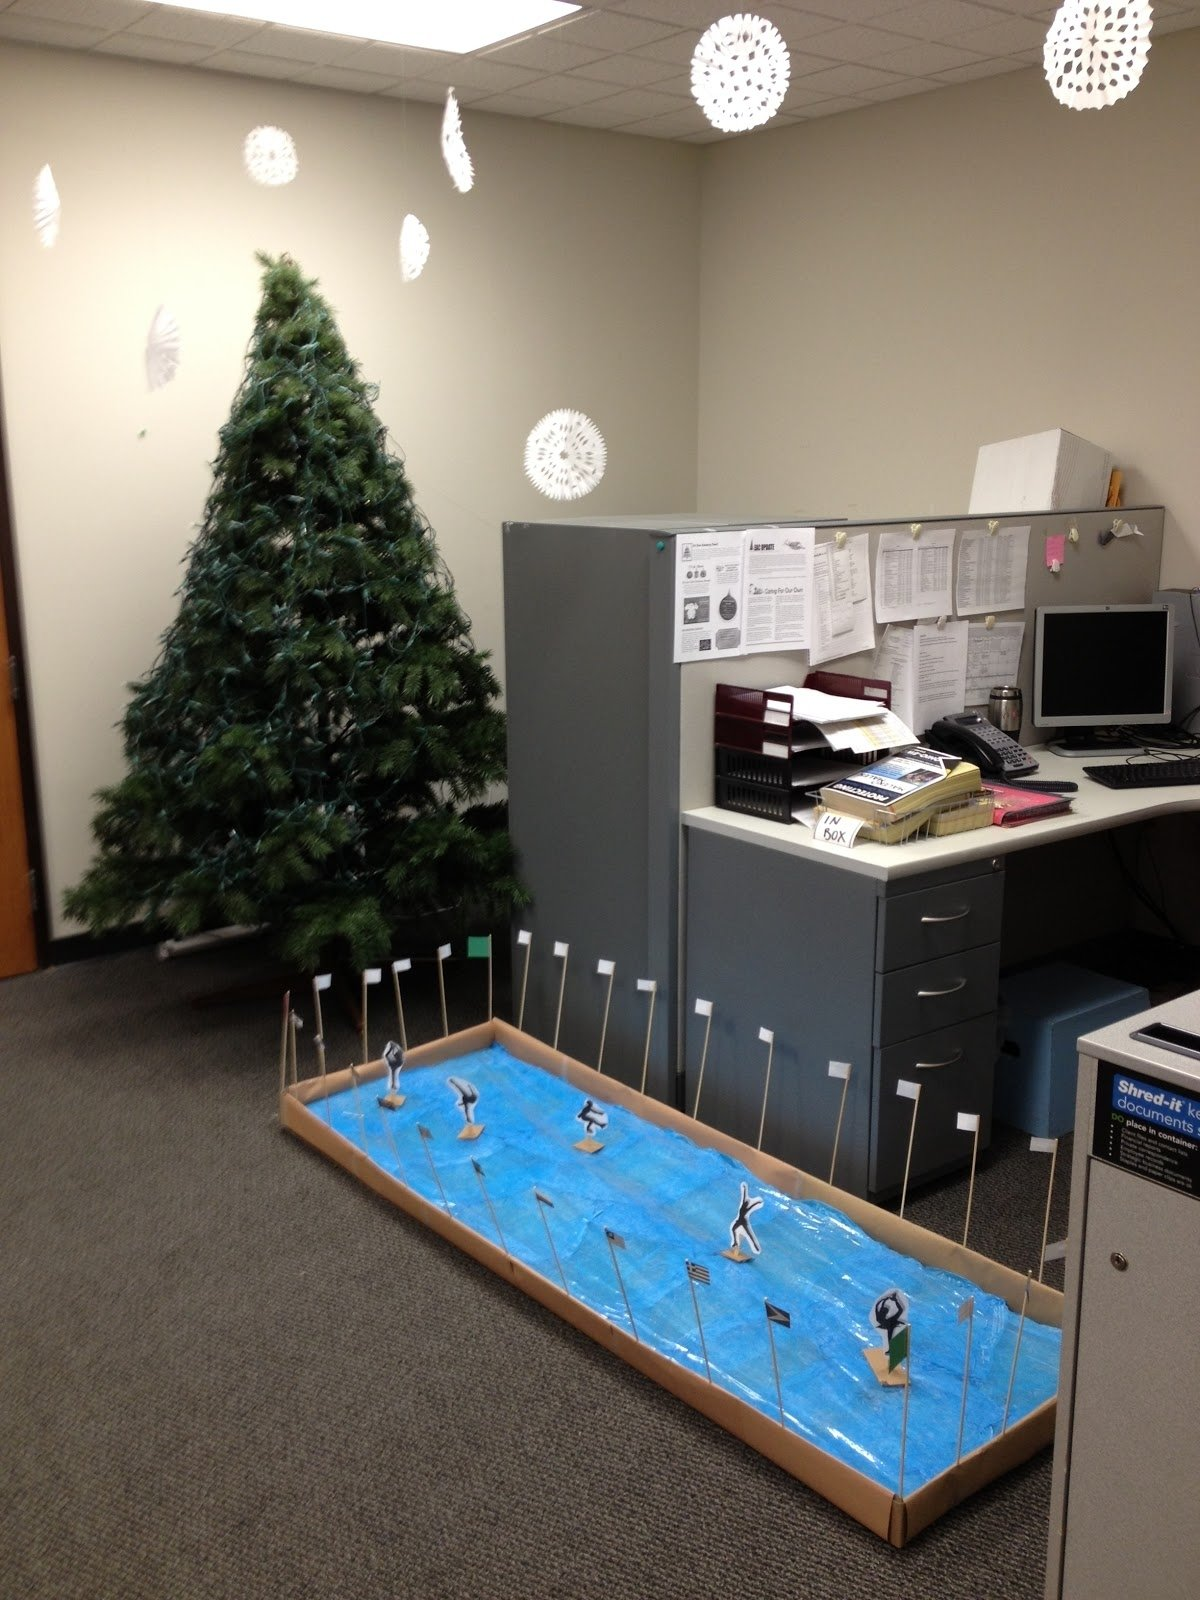 10 Fabulous Christmas Decorating Ideas For The Office decorating the office for christmas decor creative your corporate 2020